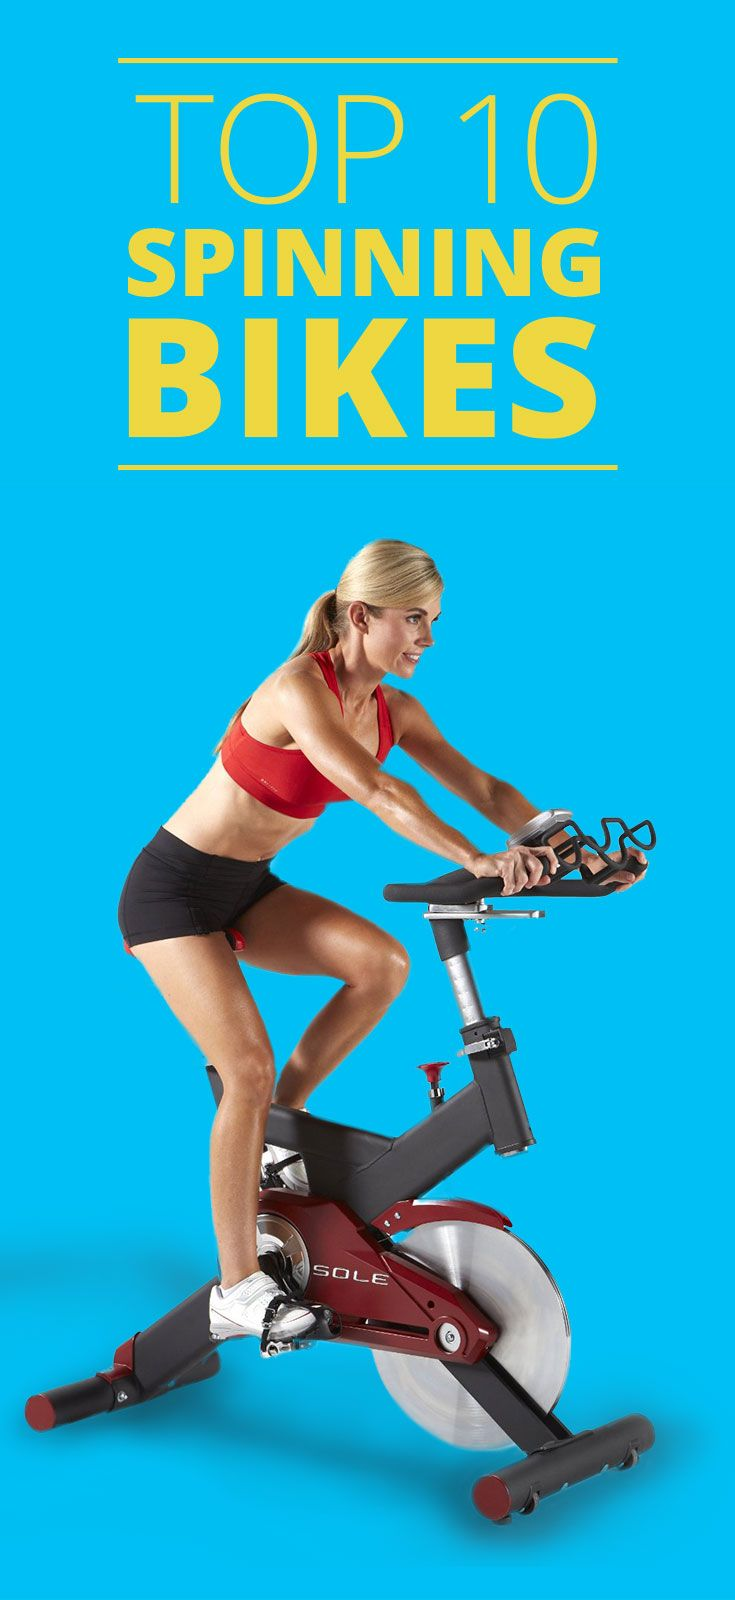 Best Spinning Bikes 2020 Spinning Bike Reviews With Images Spin Bike Workouts Biking Workout Best Exercise Bike